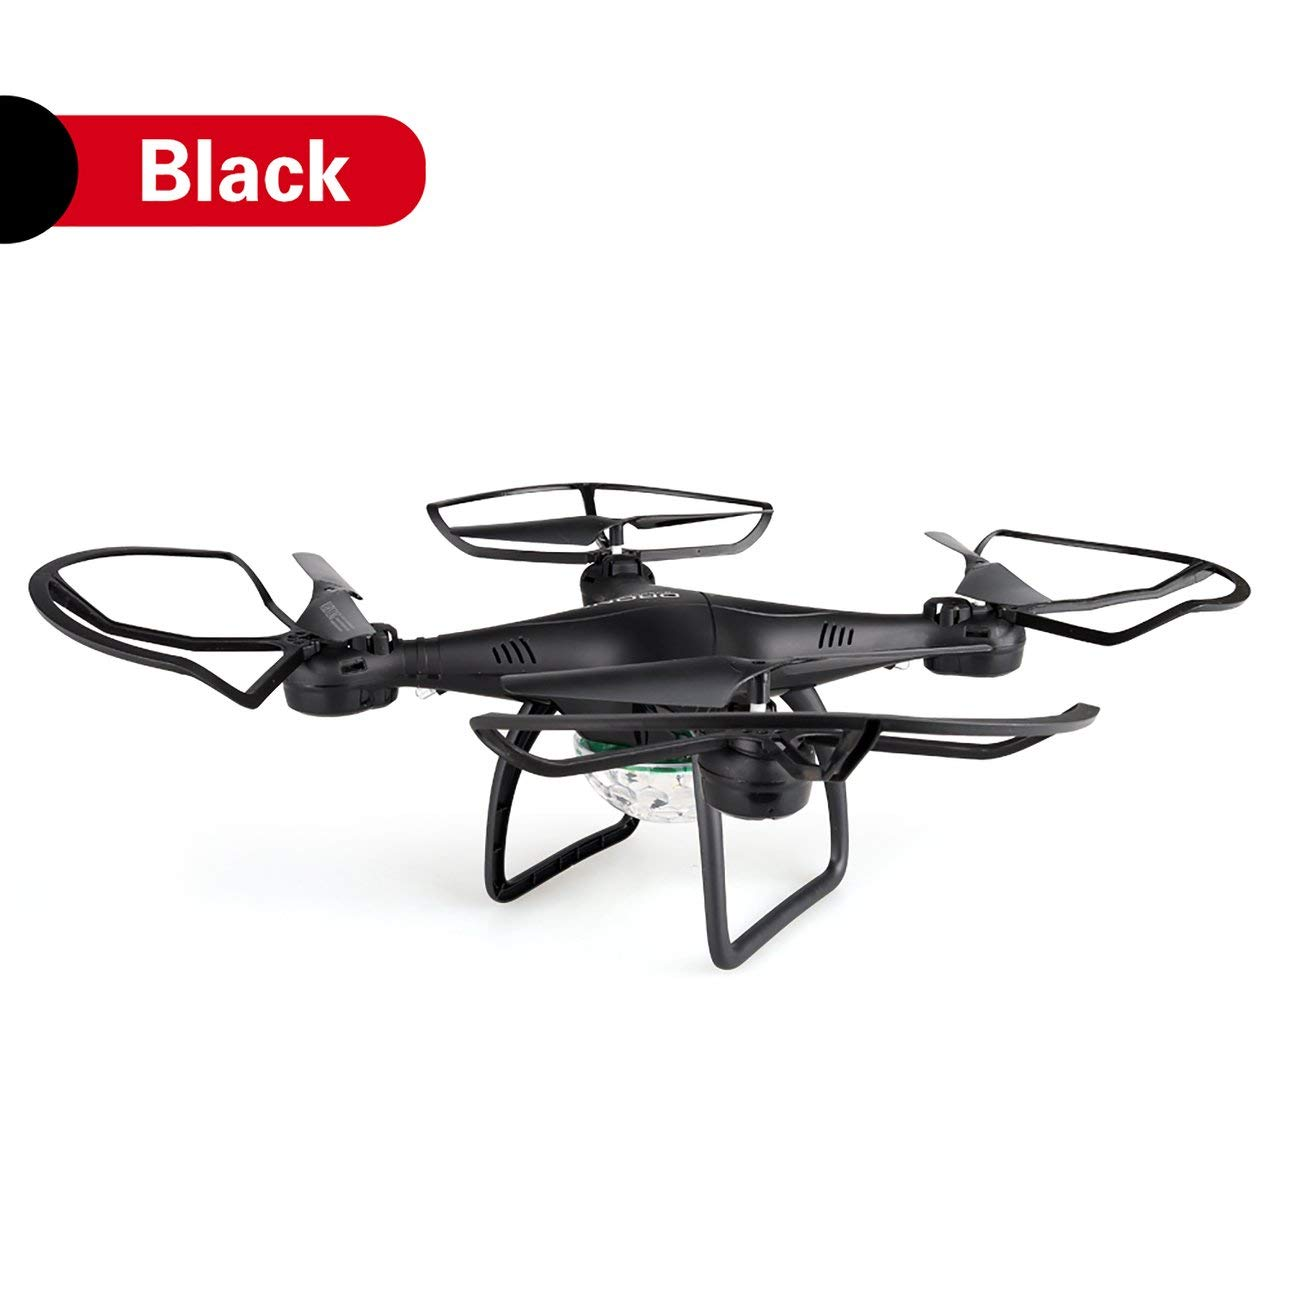 Liobaba for Axis Aircraft RC Quadcopter Drone Helicopter Model Electronic Toys